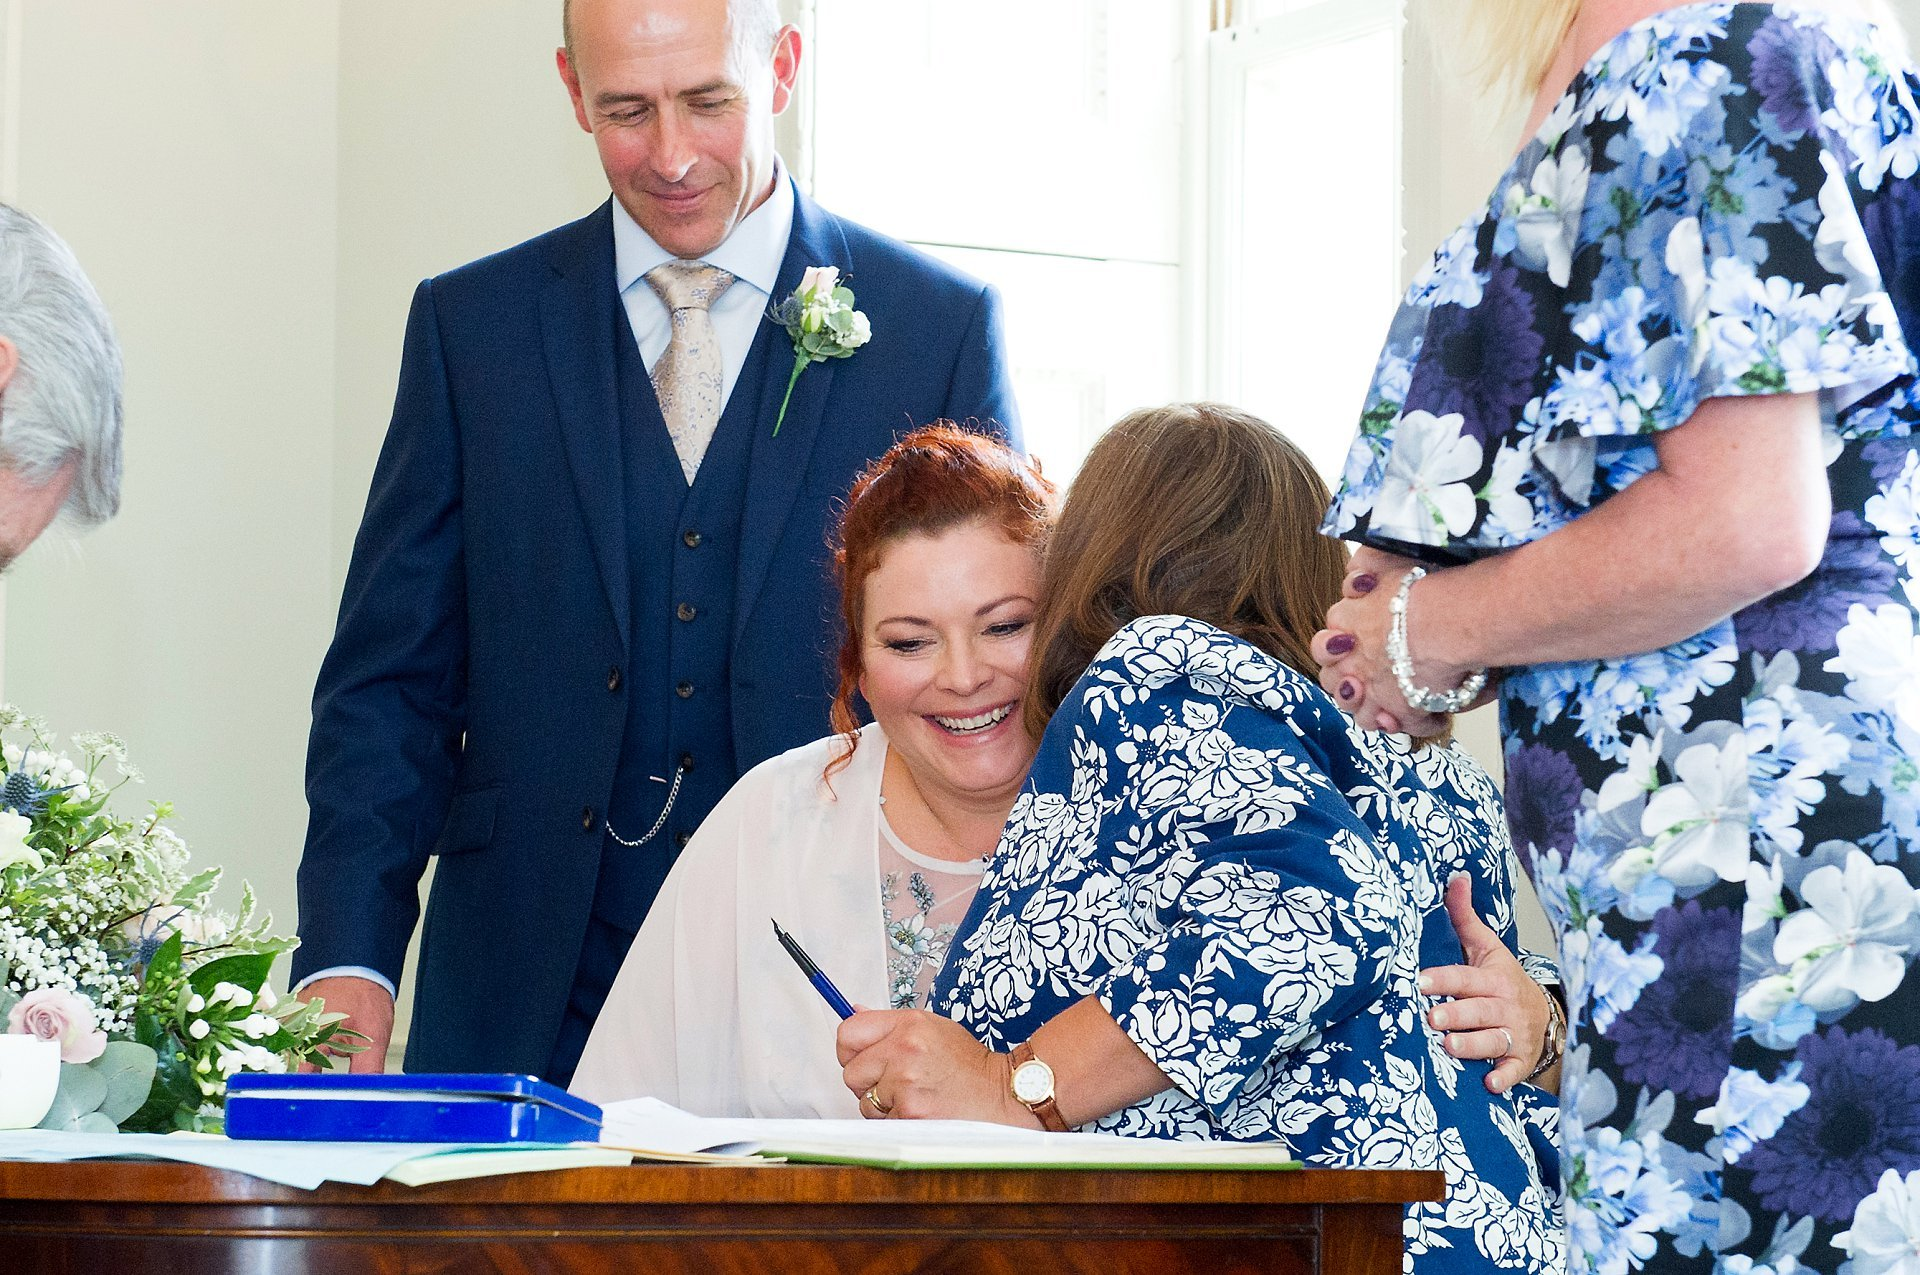 A guests congratulates the bride during the signing of the register at Park House Registry Office in Horsham